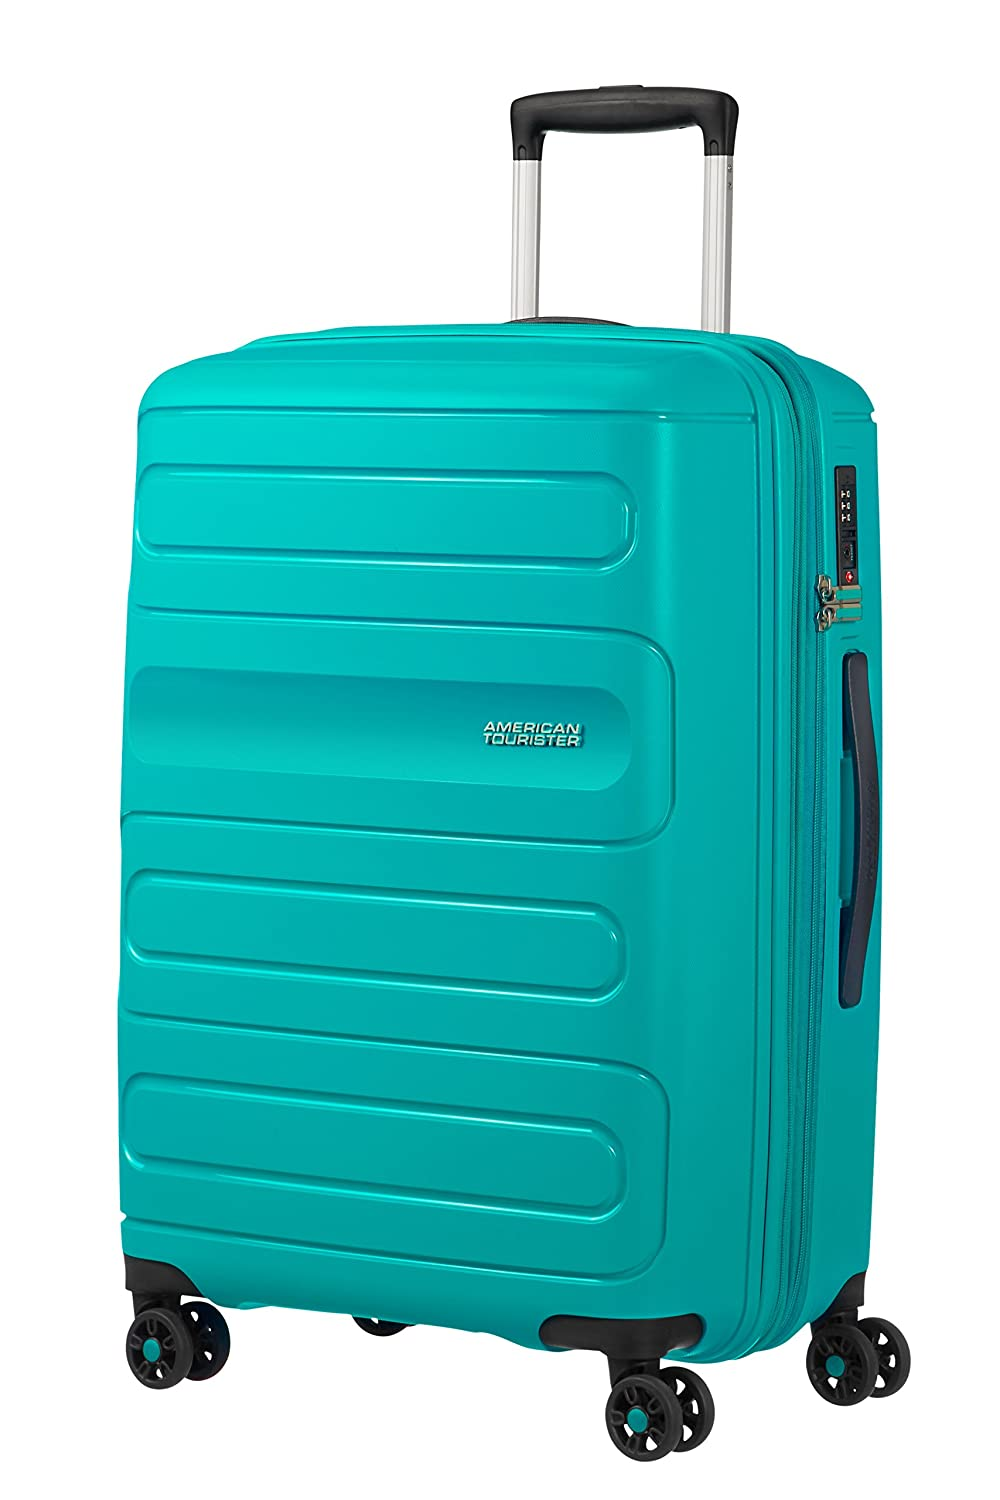 American Tourister Sunside Spinner 68 Expandible, 3.7 kg, 72.5/83.5 l, Aero Turquoise